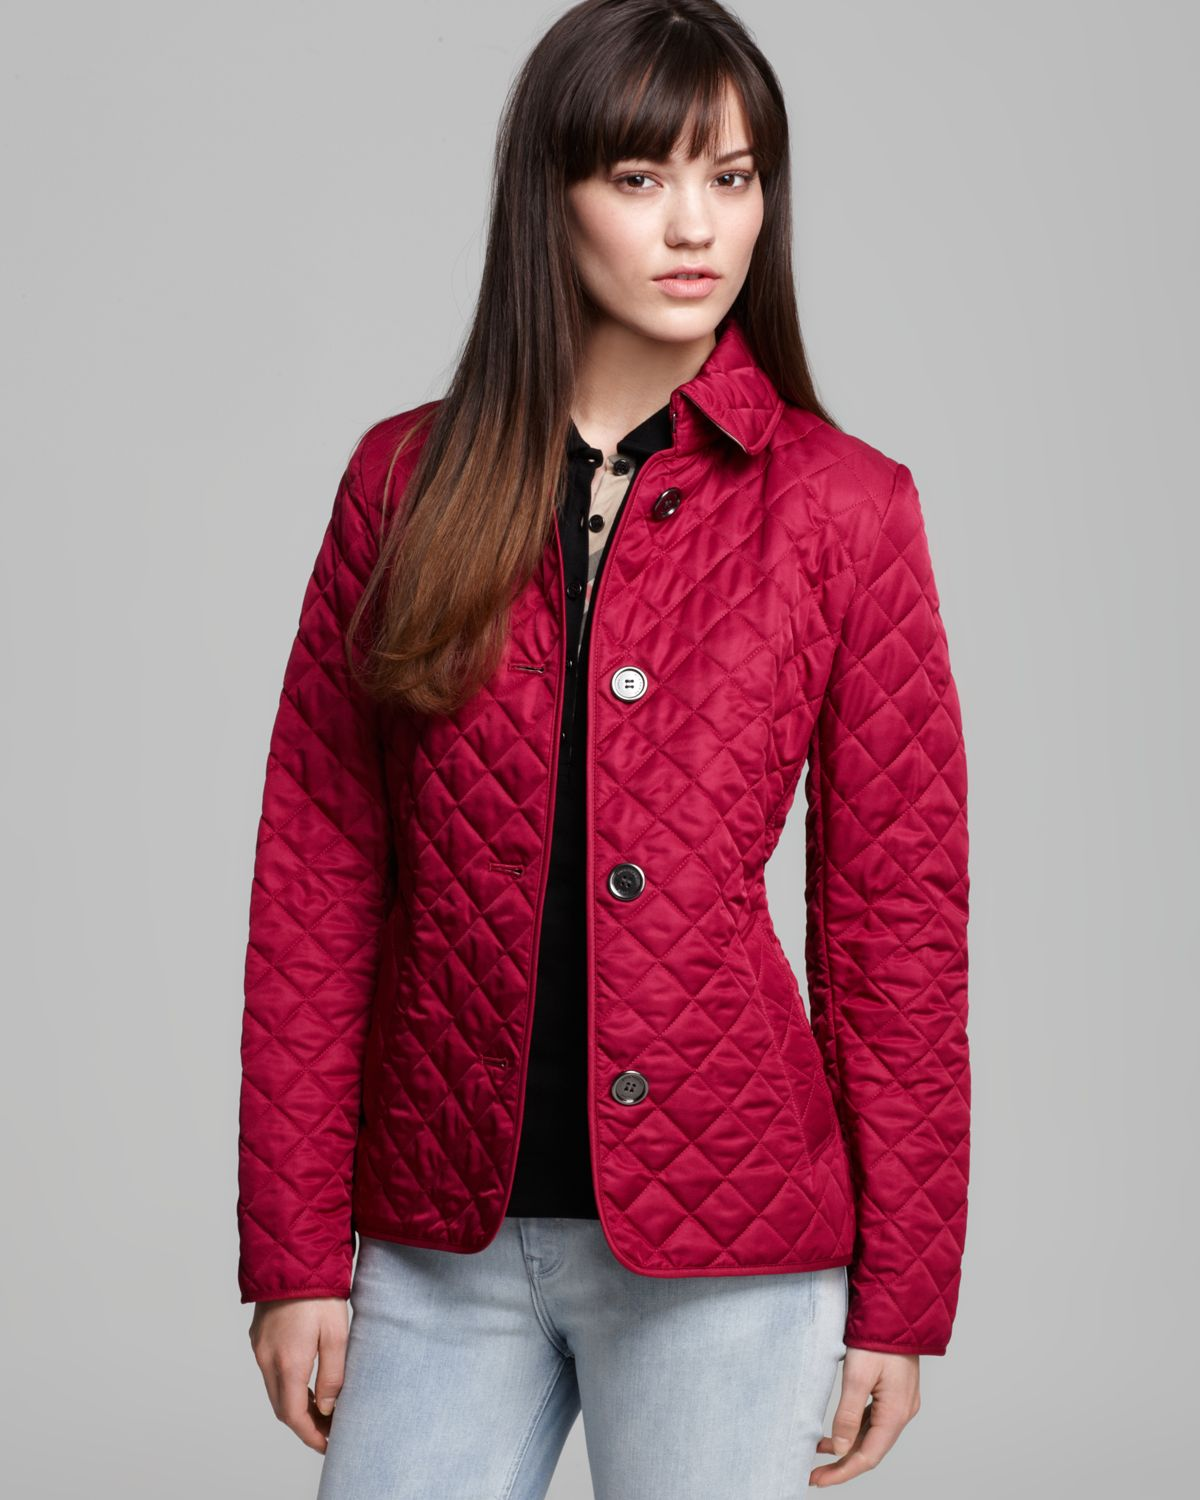 Lyst - Burberry Brit Copford Quilted Jacket in Red : red burberry quilted jacket - Adamdwight.com